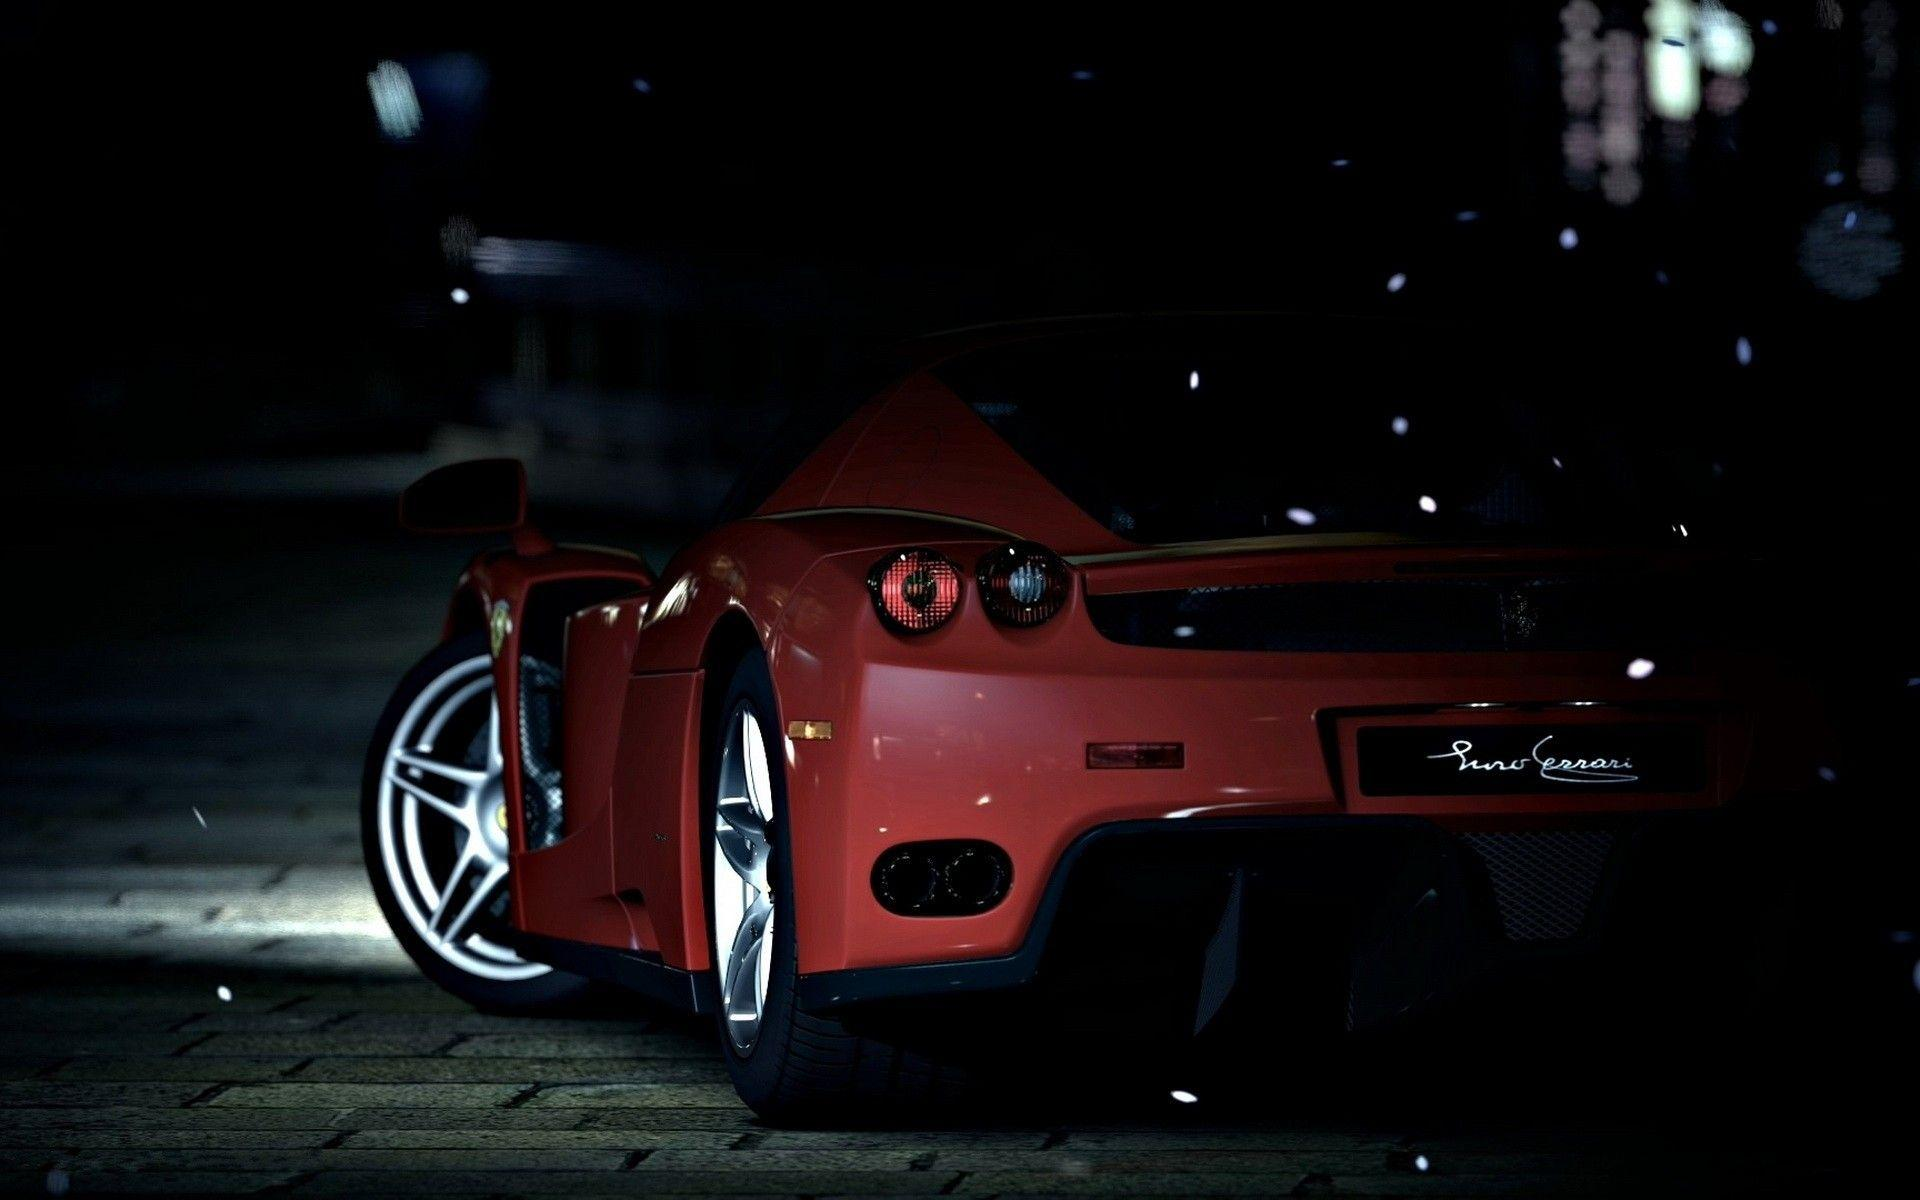 Red sports car on a dark street wallpapers and image